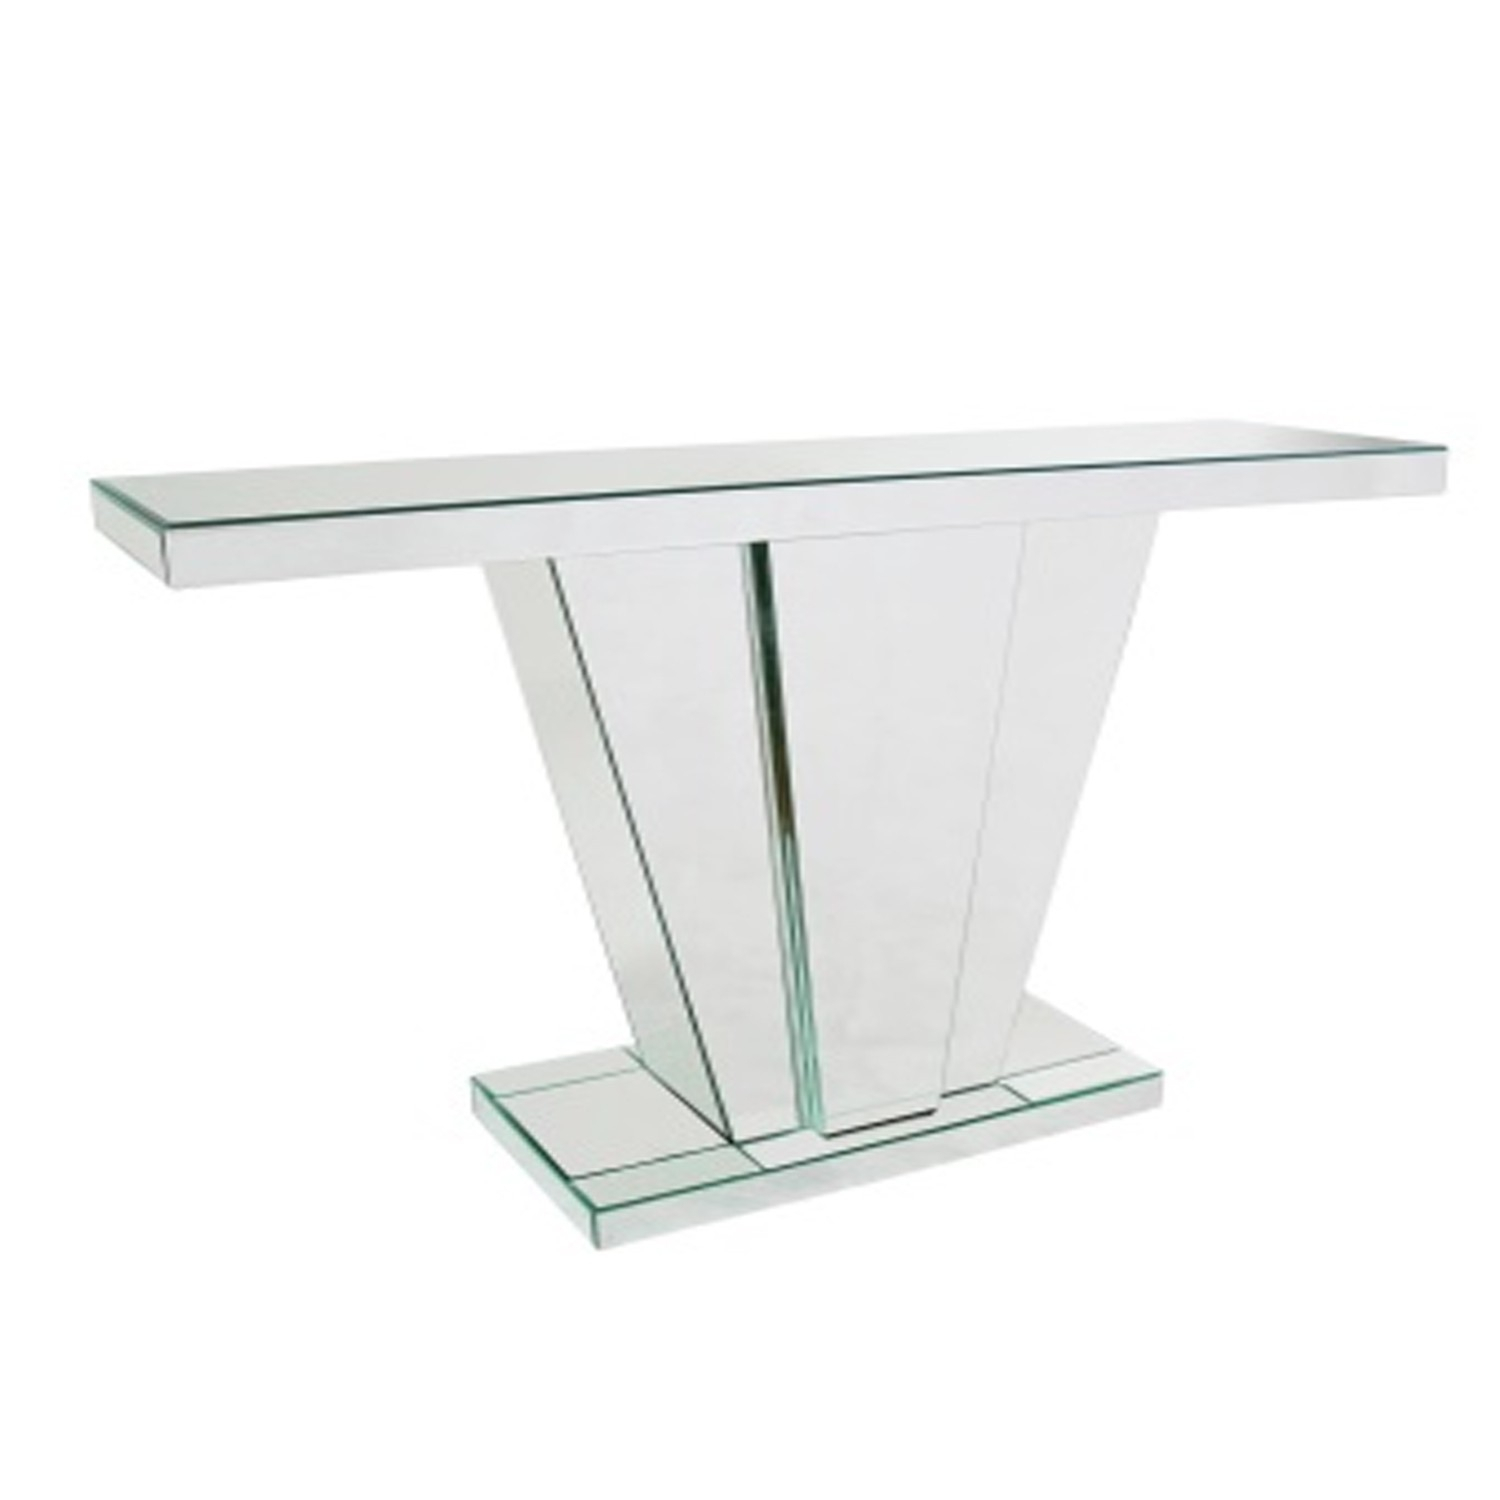 V Frame Mirrored Console Table Abreo Home Furniture Within Frame Console Tables (View 16 of 30)